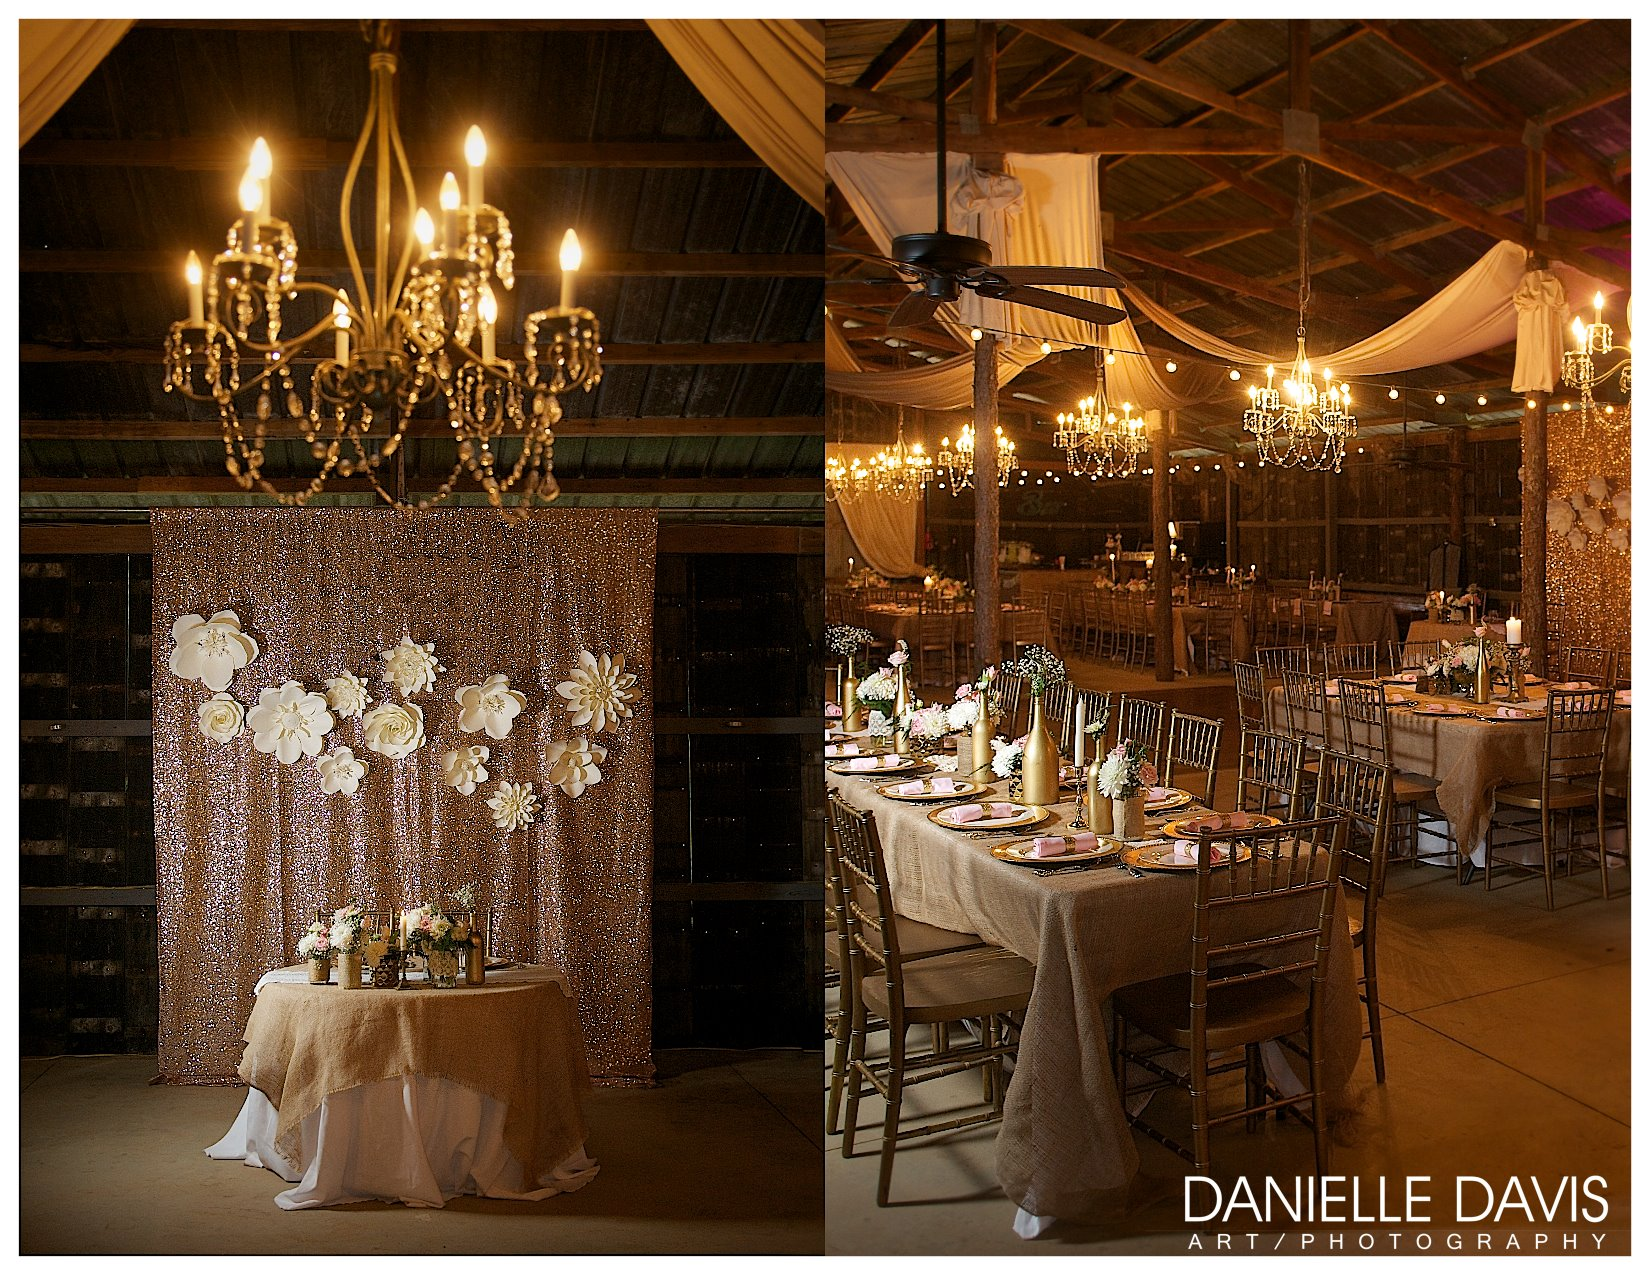 Danielle Davis Art/Photography  , from   Ashton + Mickey  's wedding at The Barn